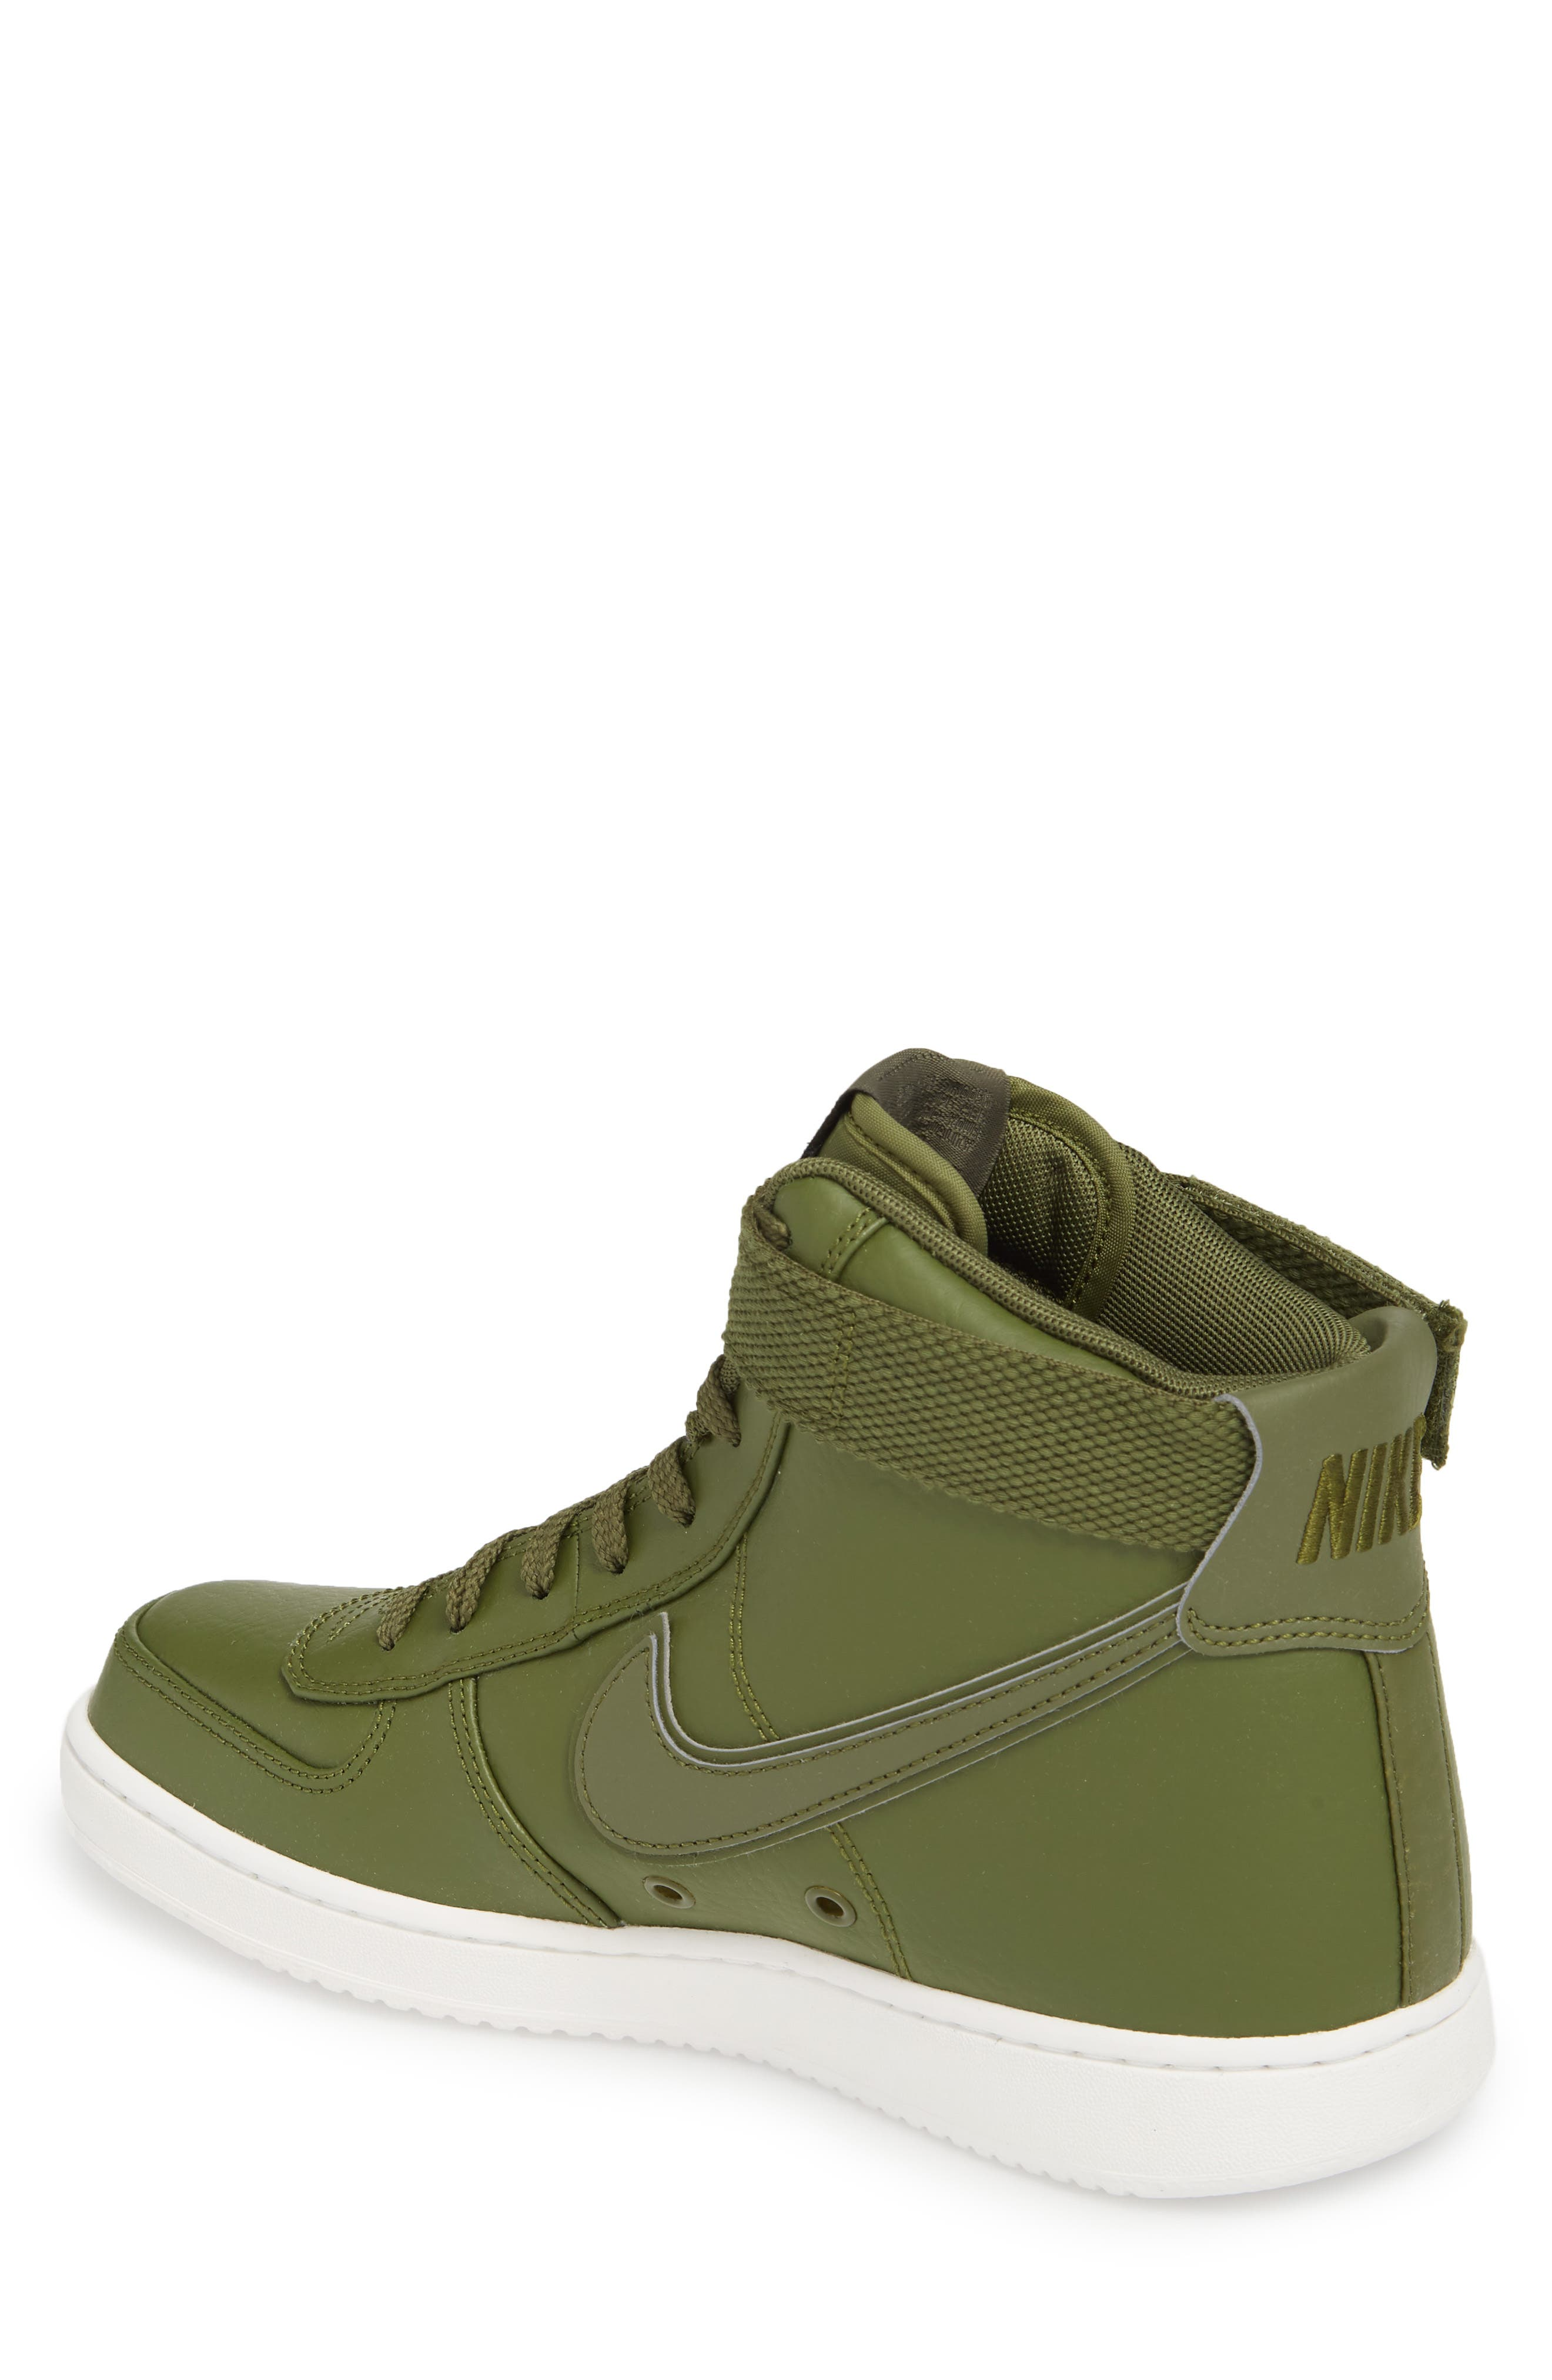 Vandal High Supreme Leather Sneaker,                             Alternate thumbnail 2, color,                             Legion Green/ Summit White